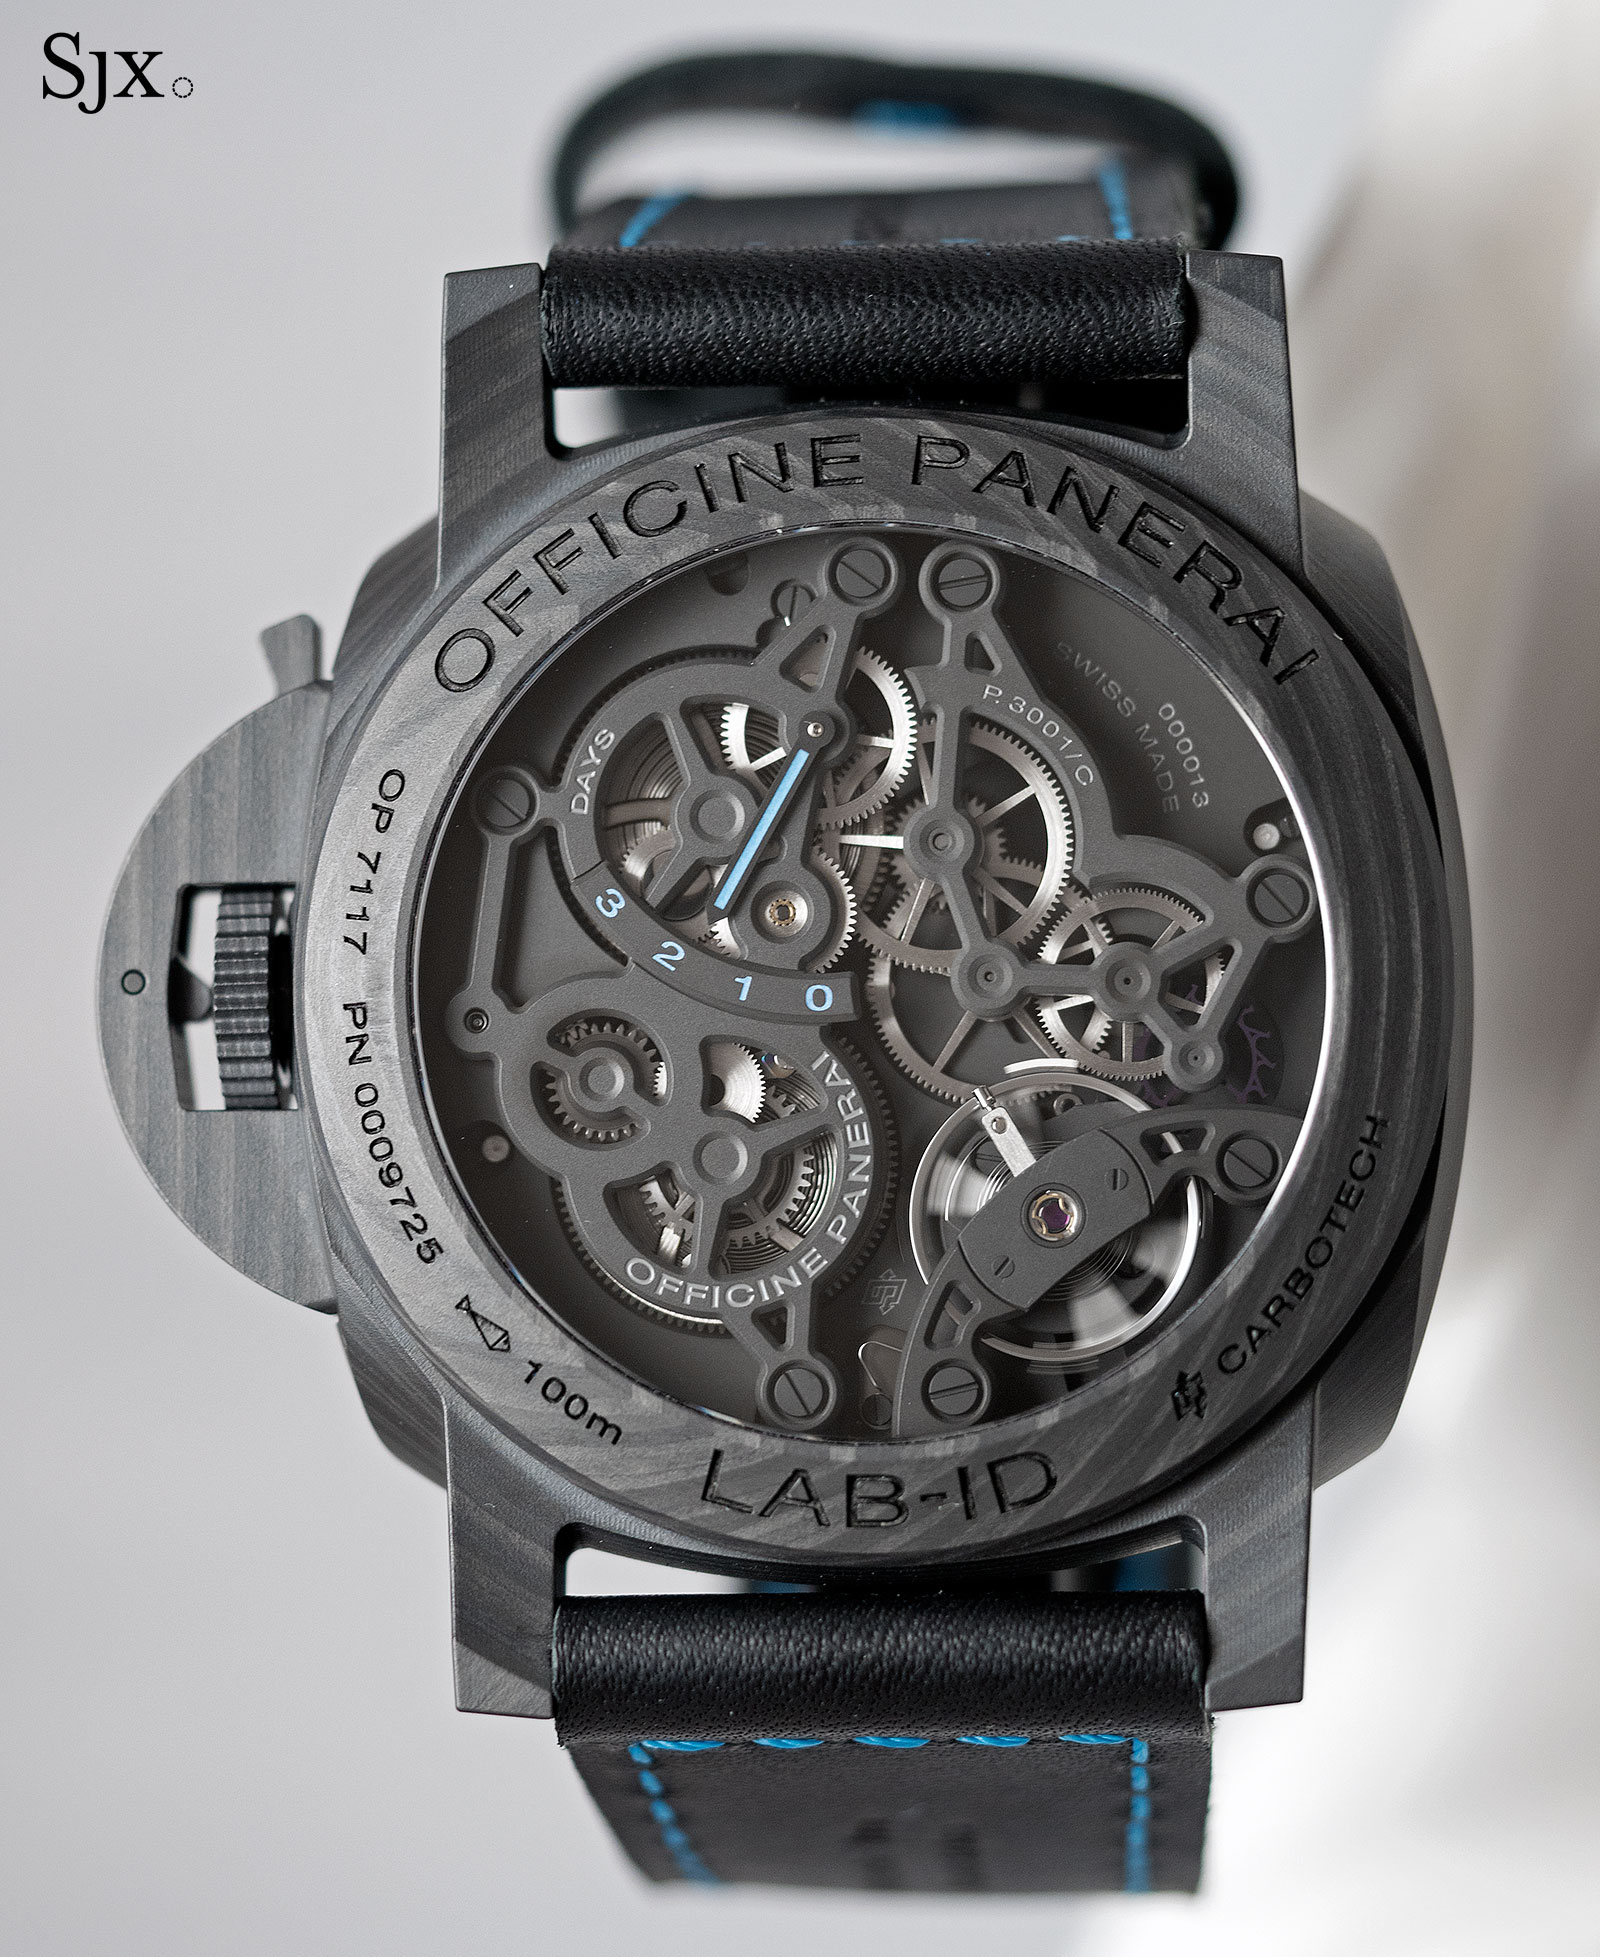 Panerai LAB-ID Luminor 1950 Carbotech 3 Days PAM700-4